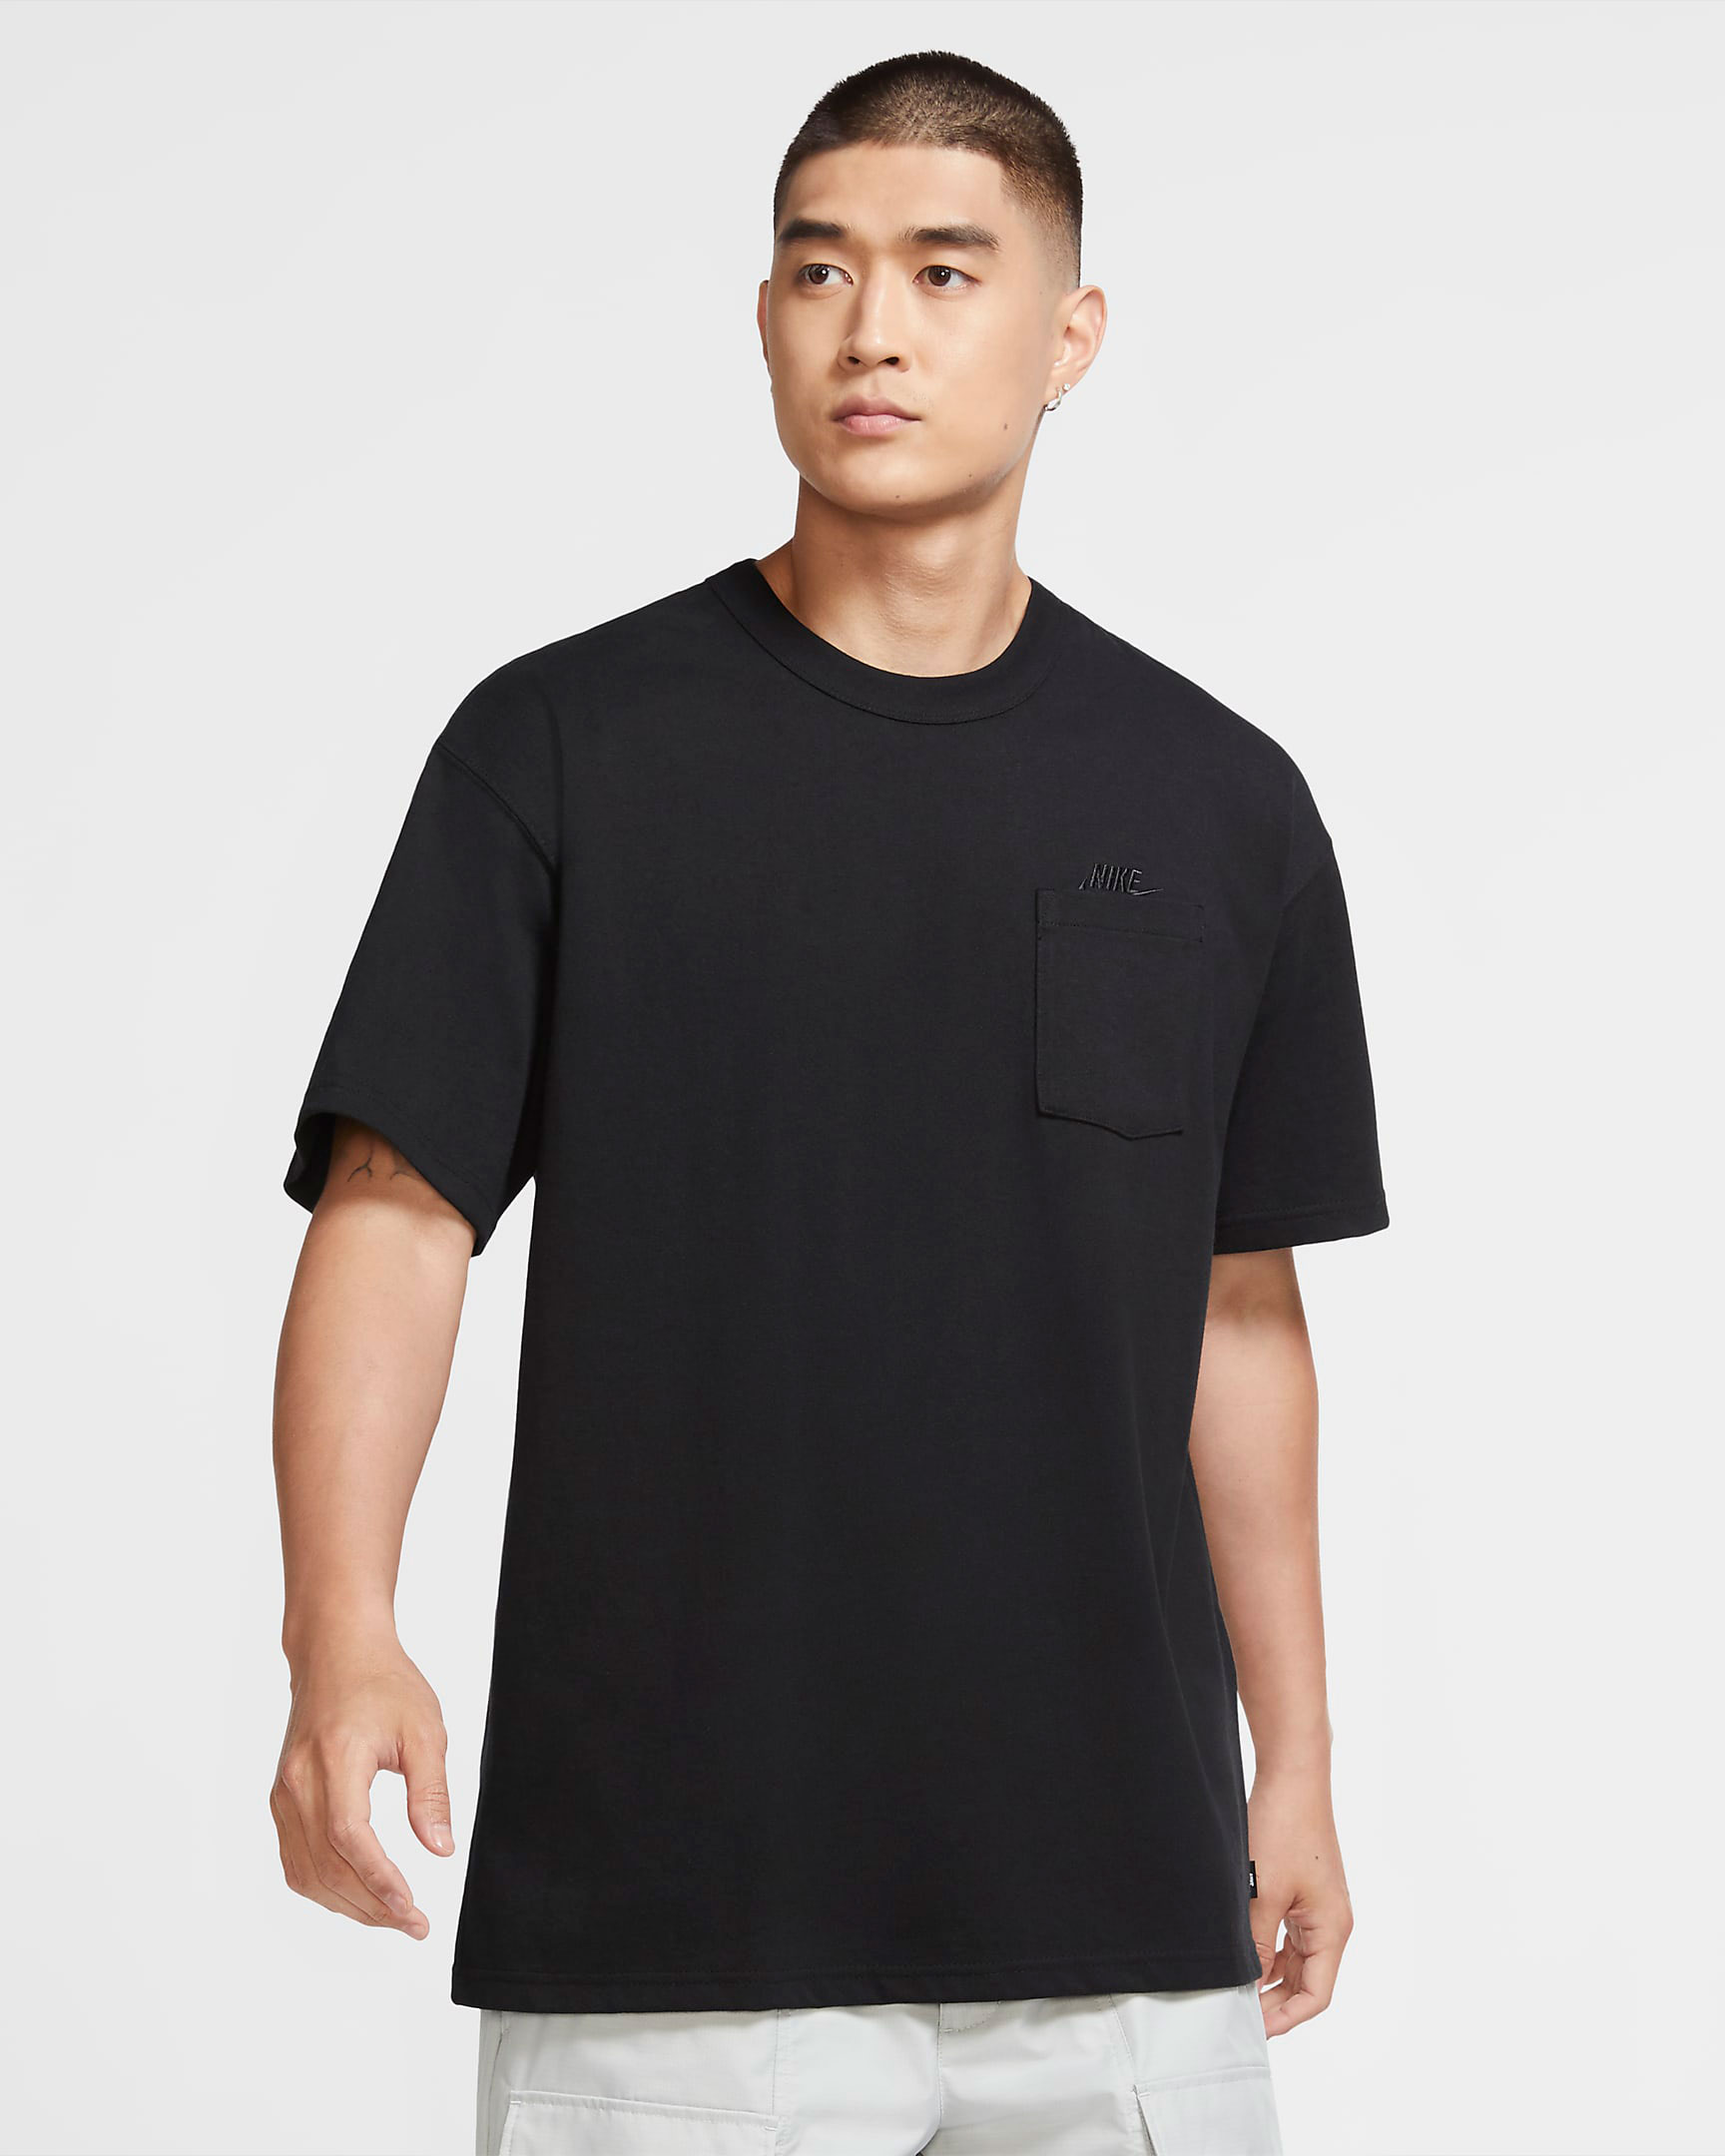 nike-foamposite-one-anthracite-blackout-shirt-match-2